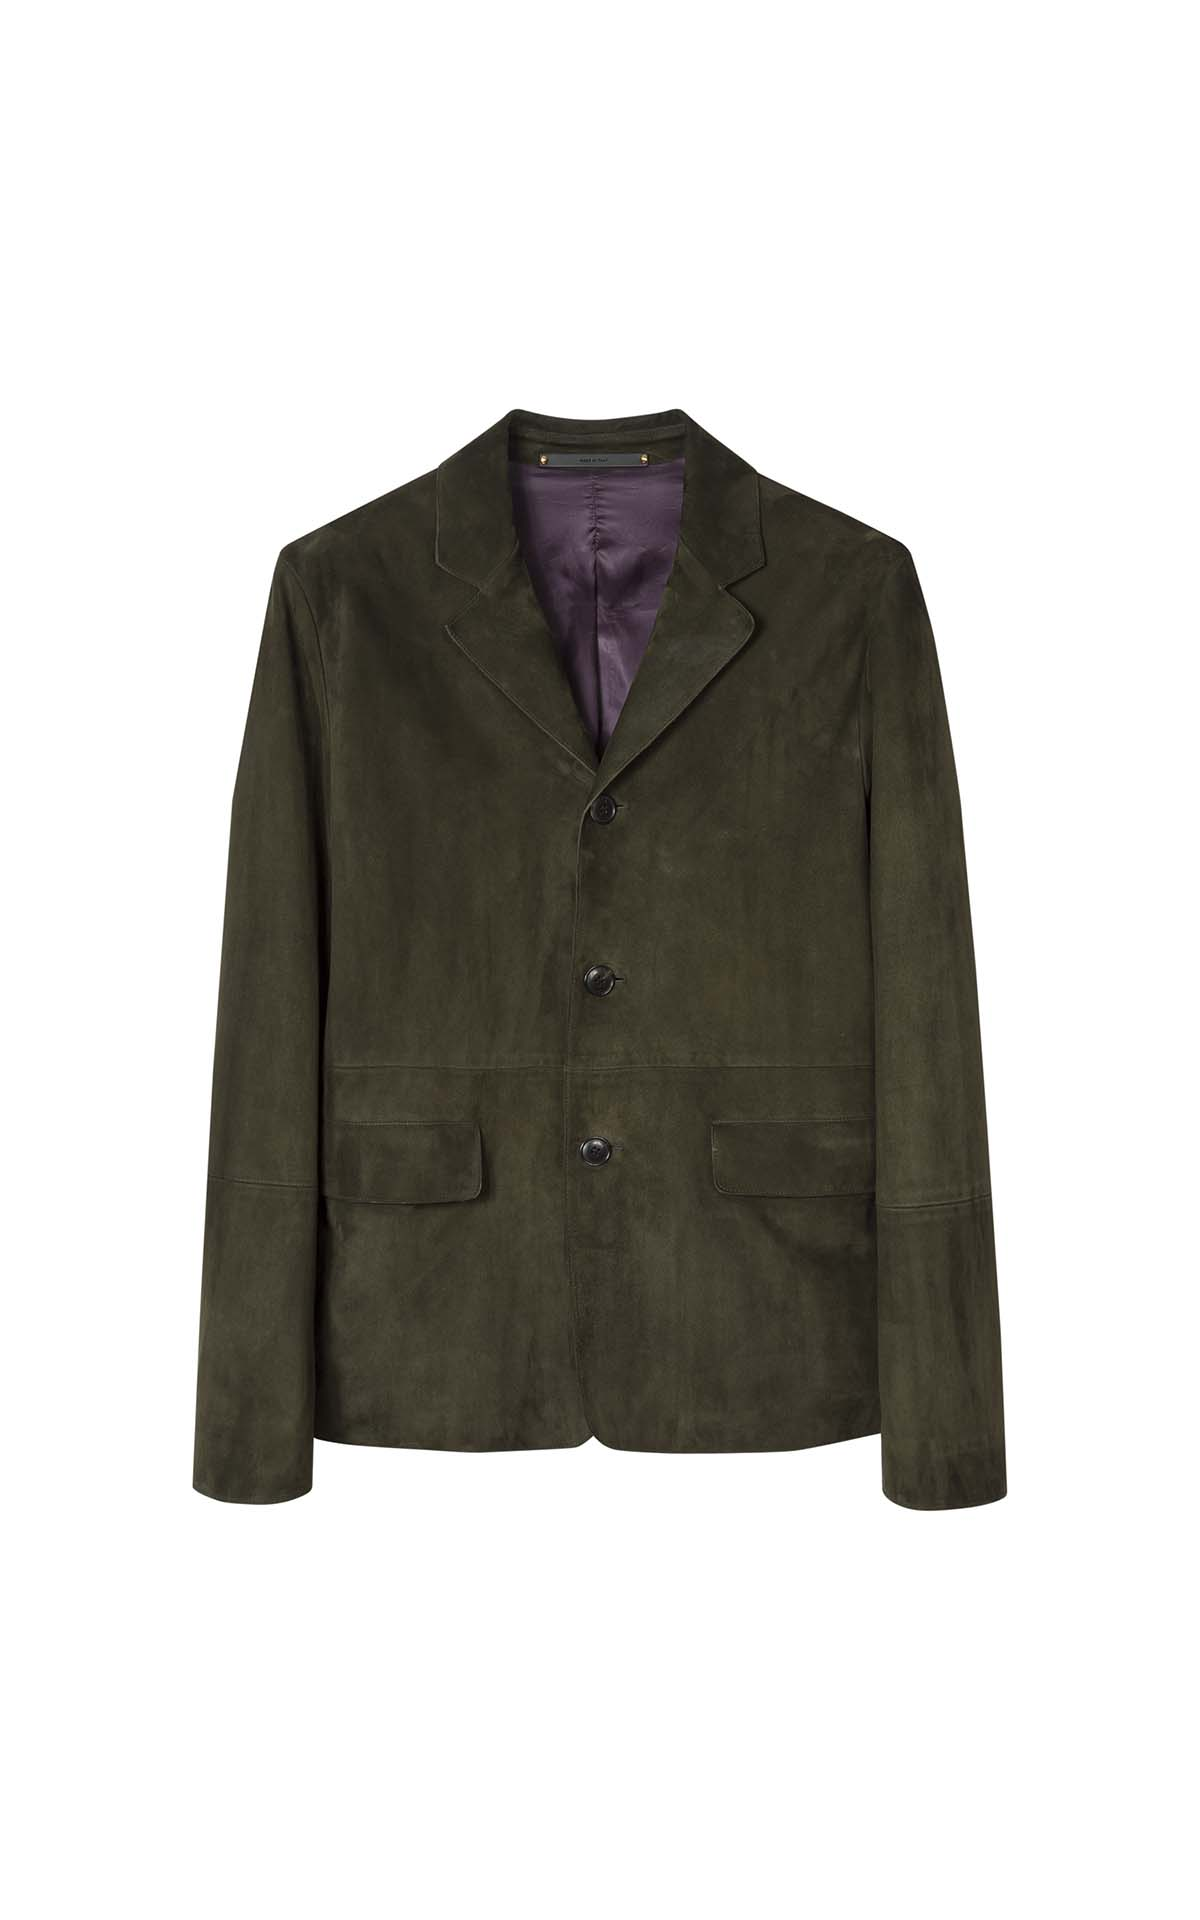 Paul Smith's Men Suede Coat at The Bicester Village Shopping Collection